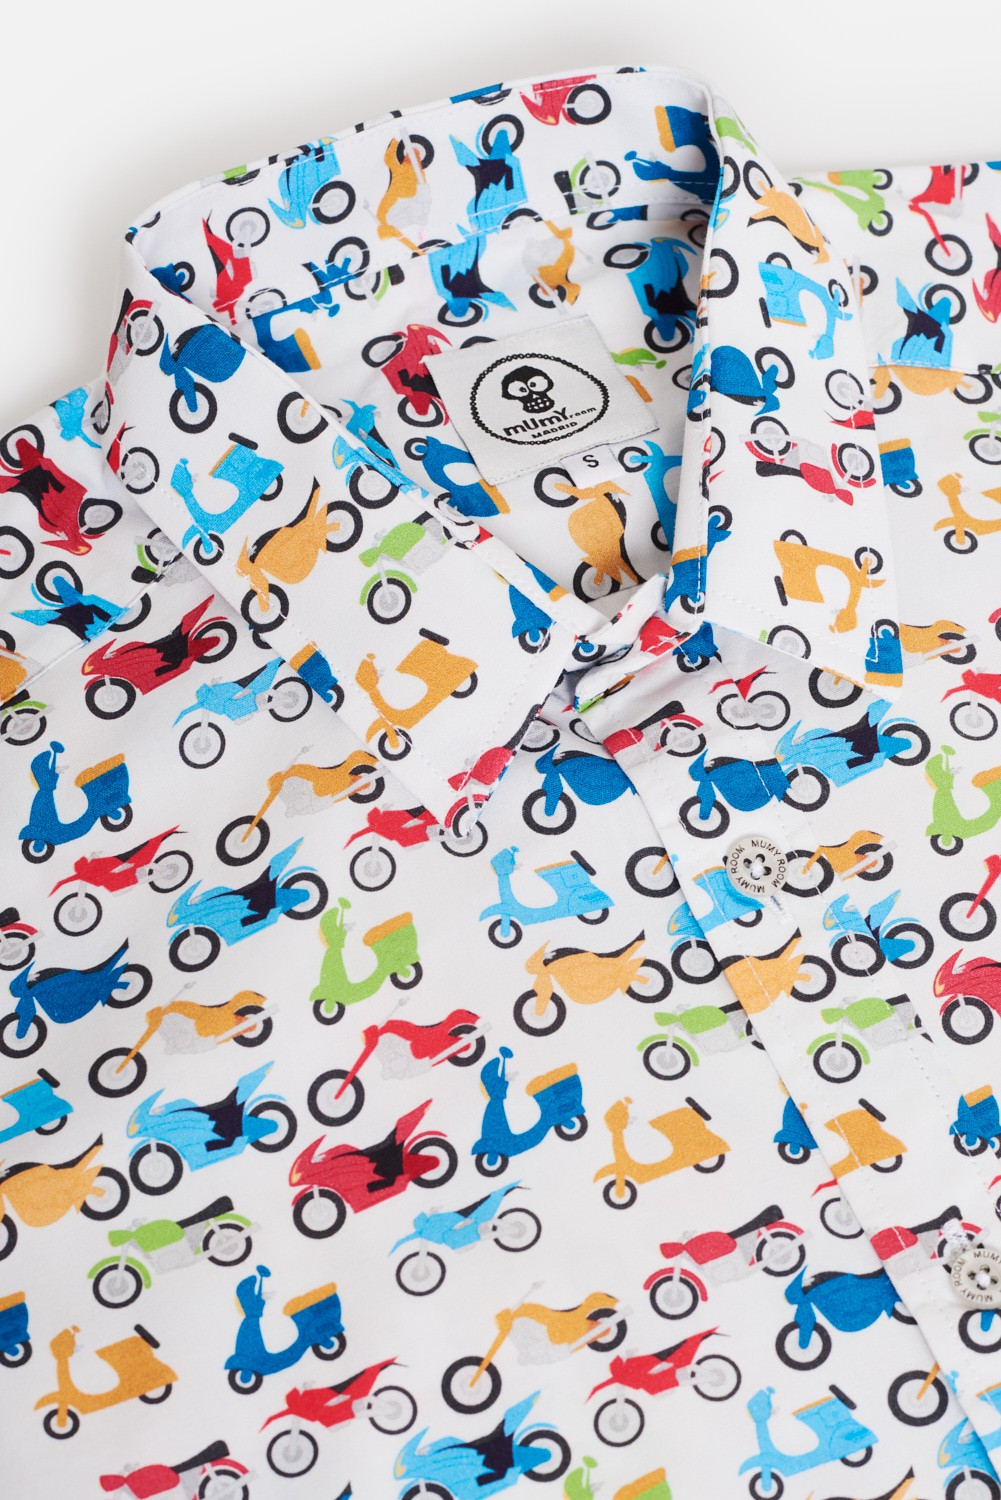 ADULT´S PRINTED SHIRT UMAMI LINE COLORED MOTORCYCLES